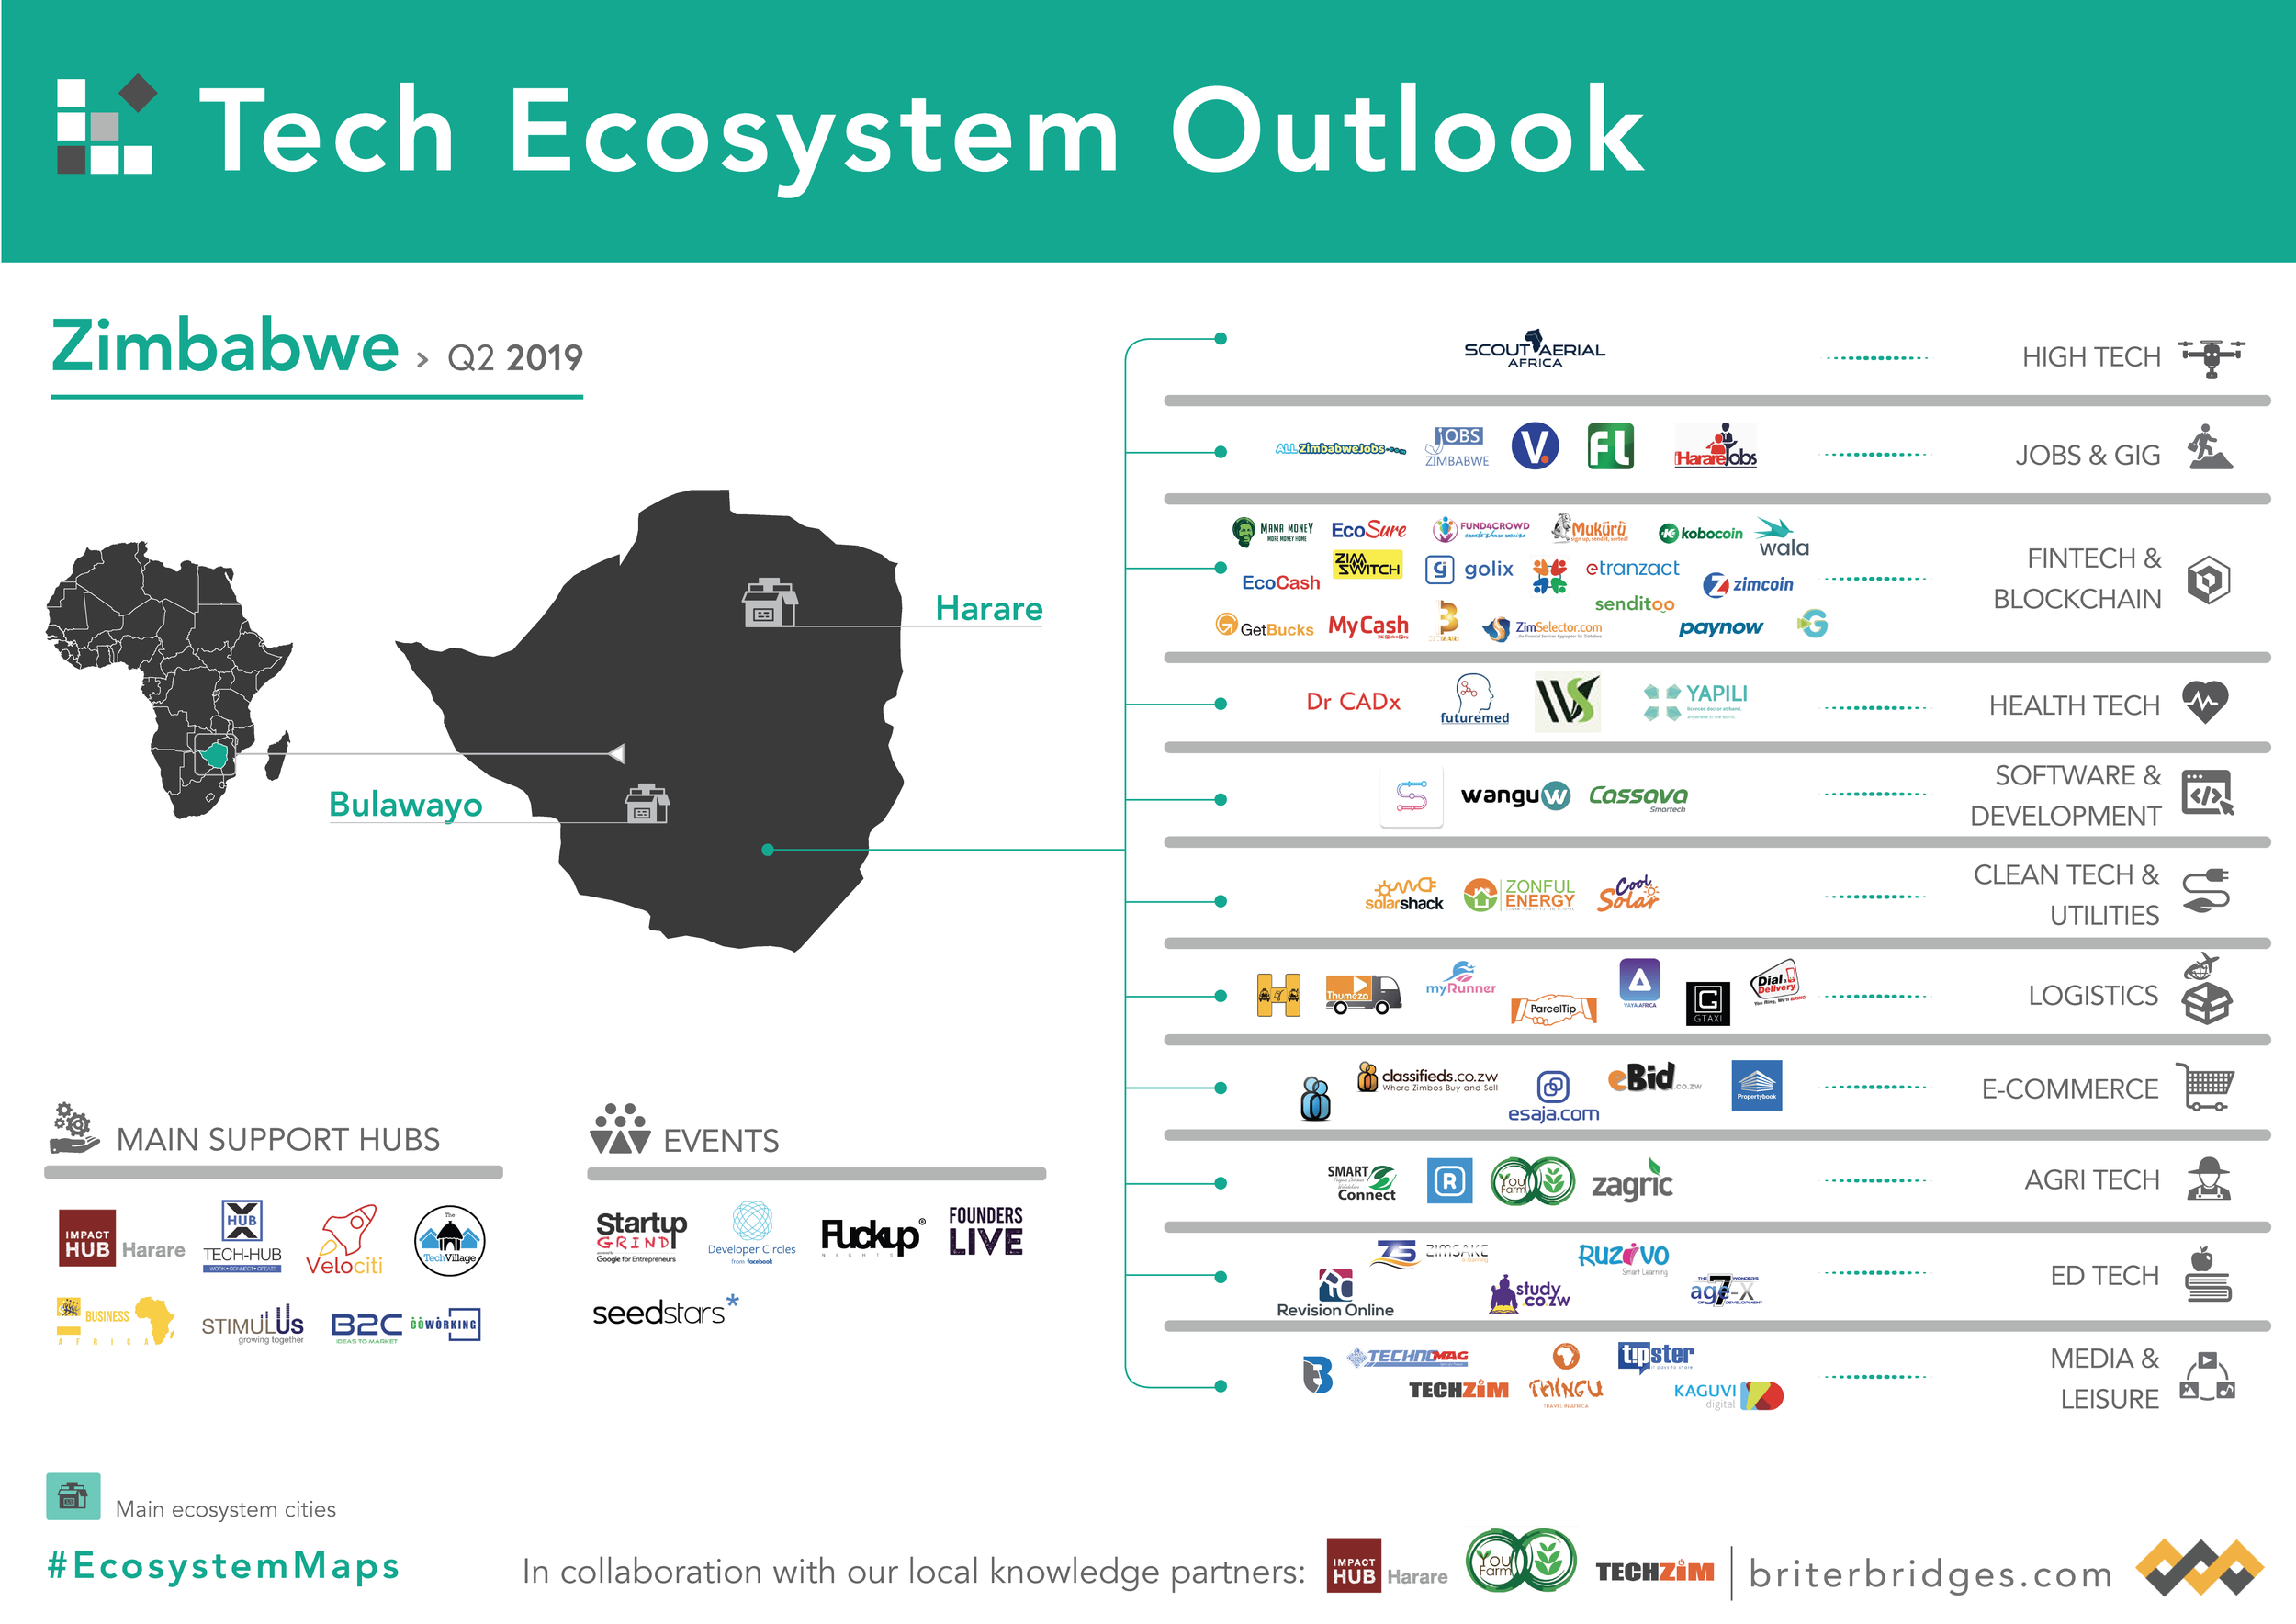 Zimbabwe's Tech Ecosystem Map